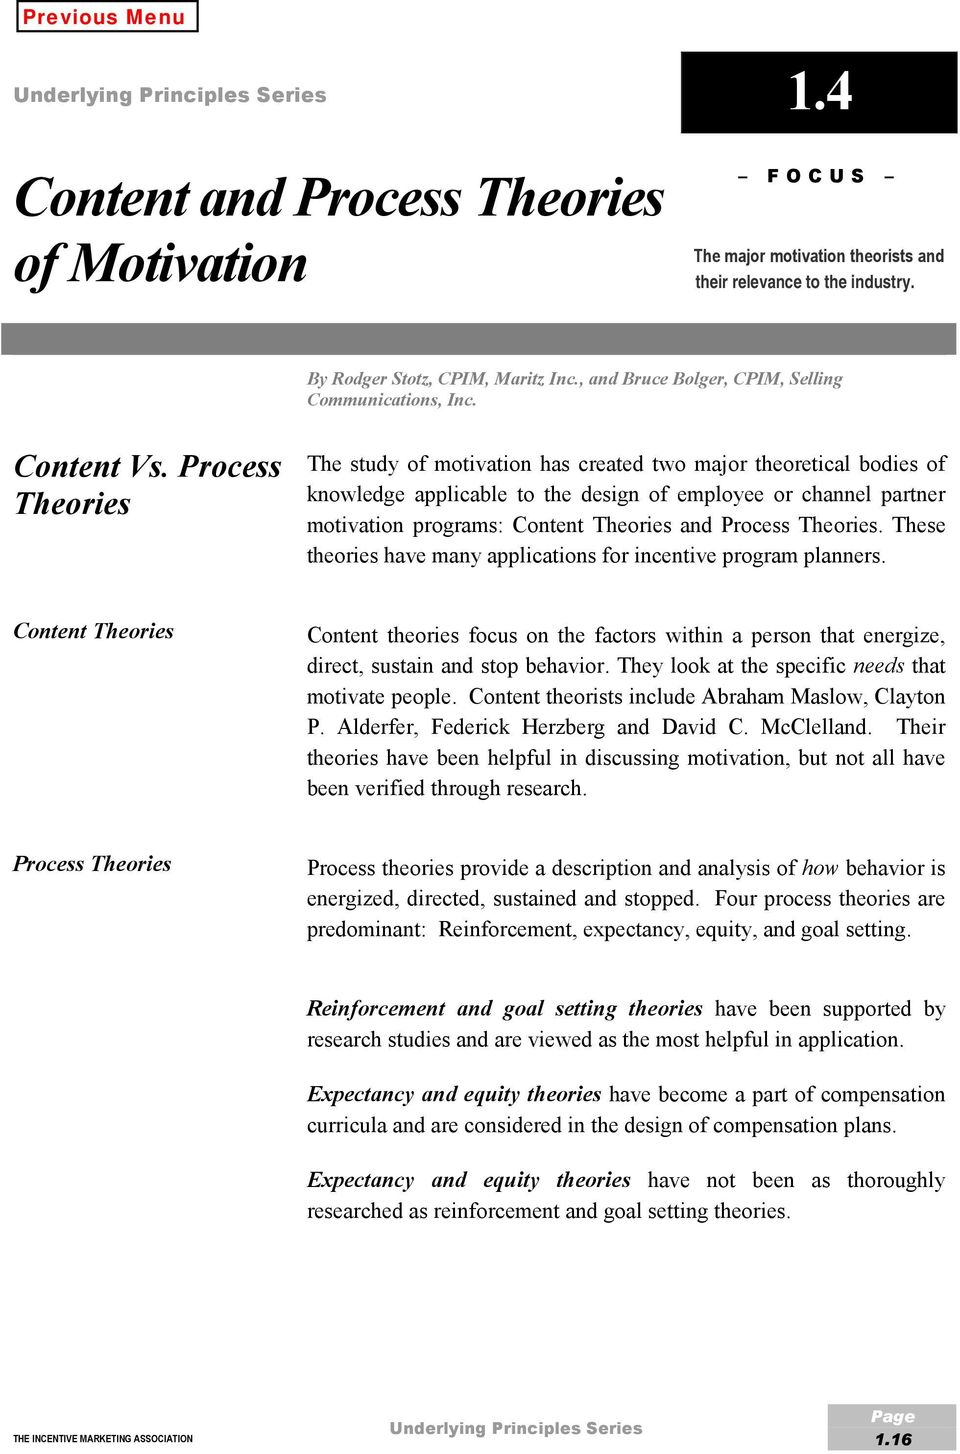 Process Theories The study of motivation has created two major theoretical bodies of knowledge applicable to the design of employee or channel partner motivation programs: Content Theories and